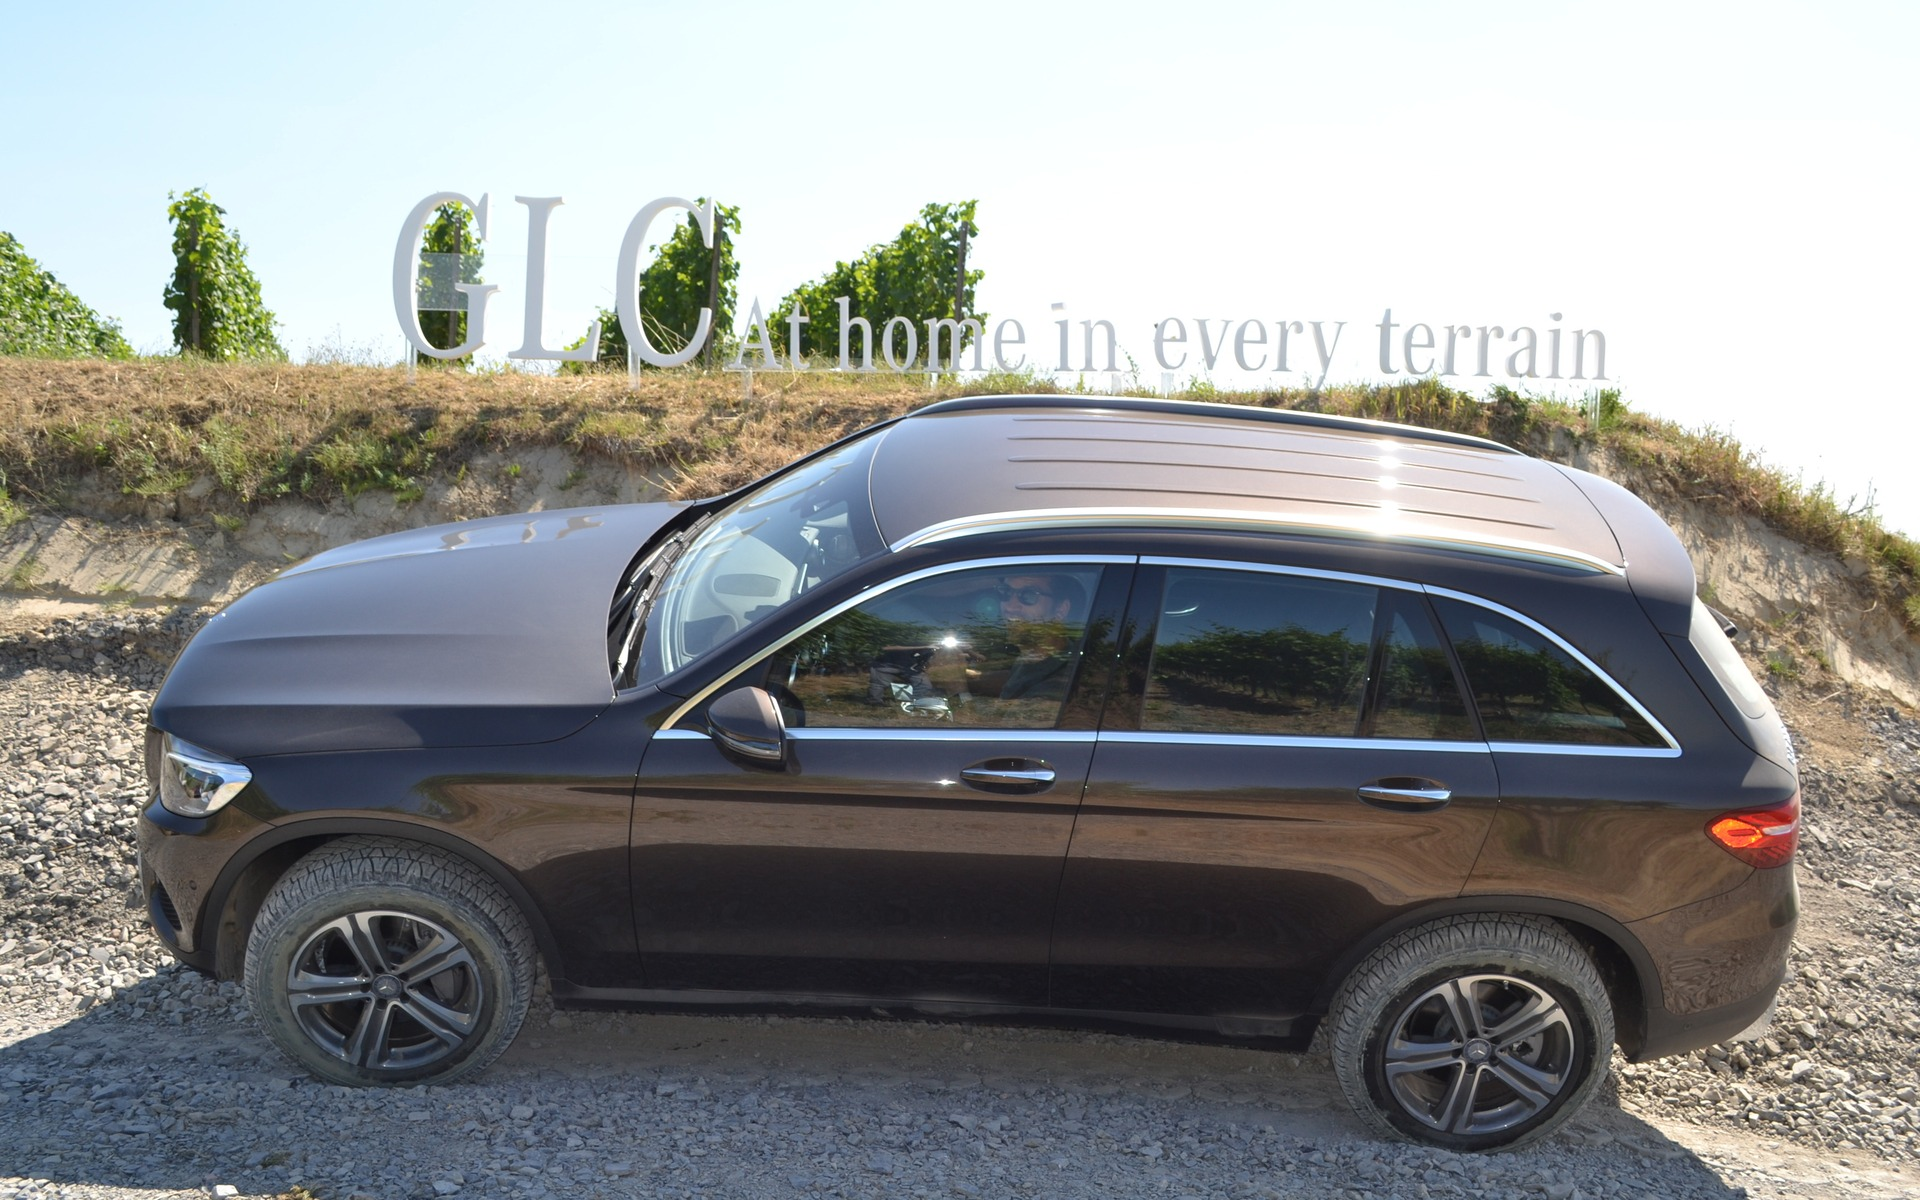 2017 mercedes benz glc 350 e 4matic a first rechargeable hybrid 9 12. Black Bedroom Furniture Sets. Home Design Ideas